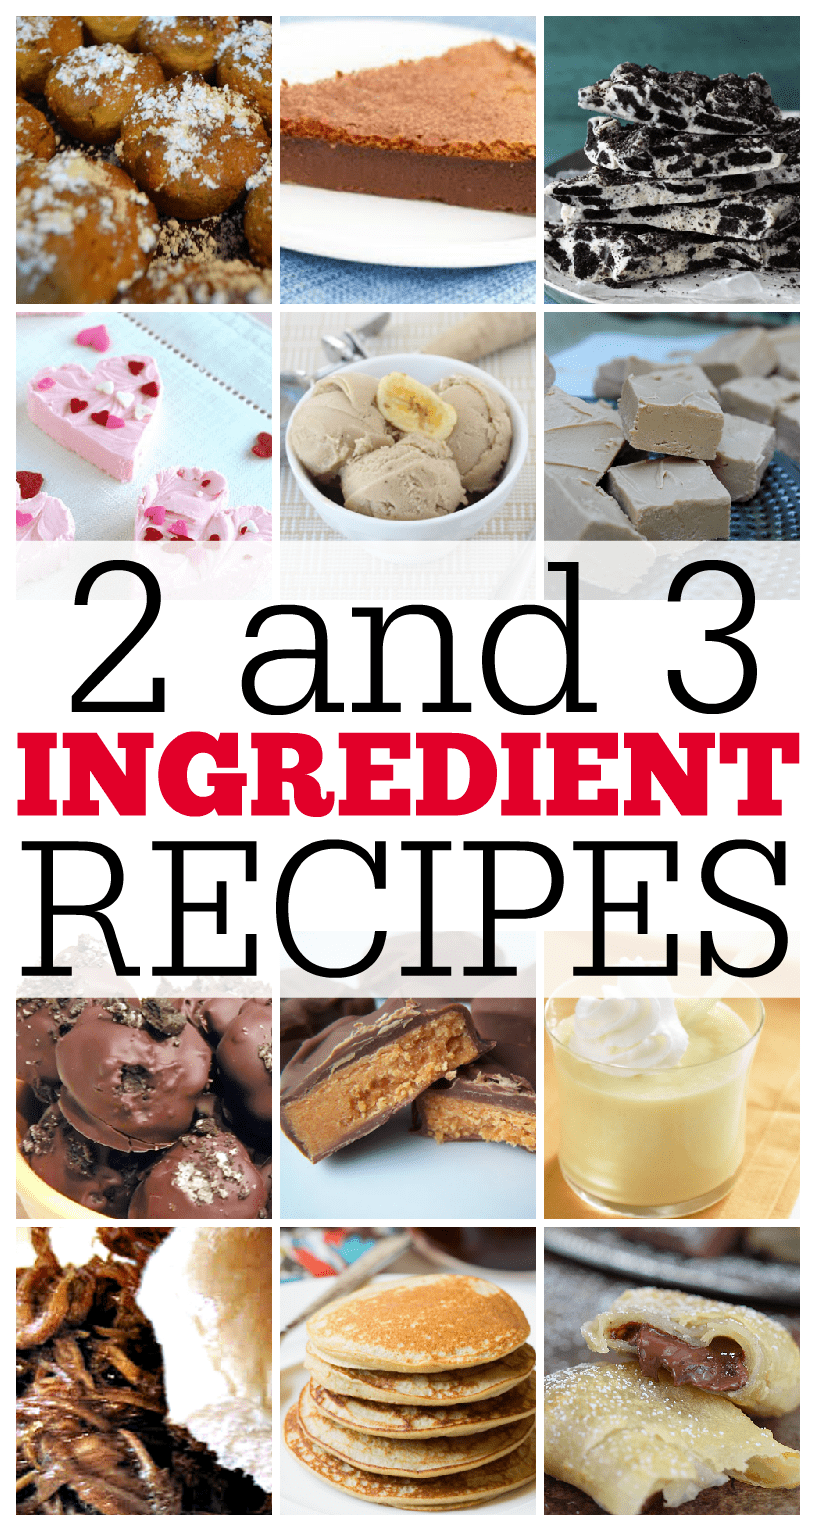 Cake Recipes With Pictures And Ingredients : 2 and 3 Ingredient Recipes Round Up - This Girl s Life Blog